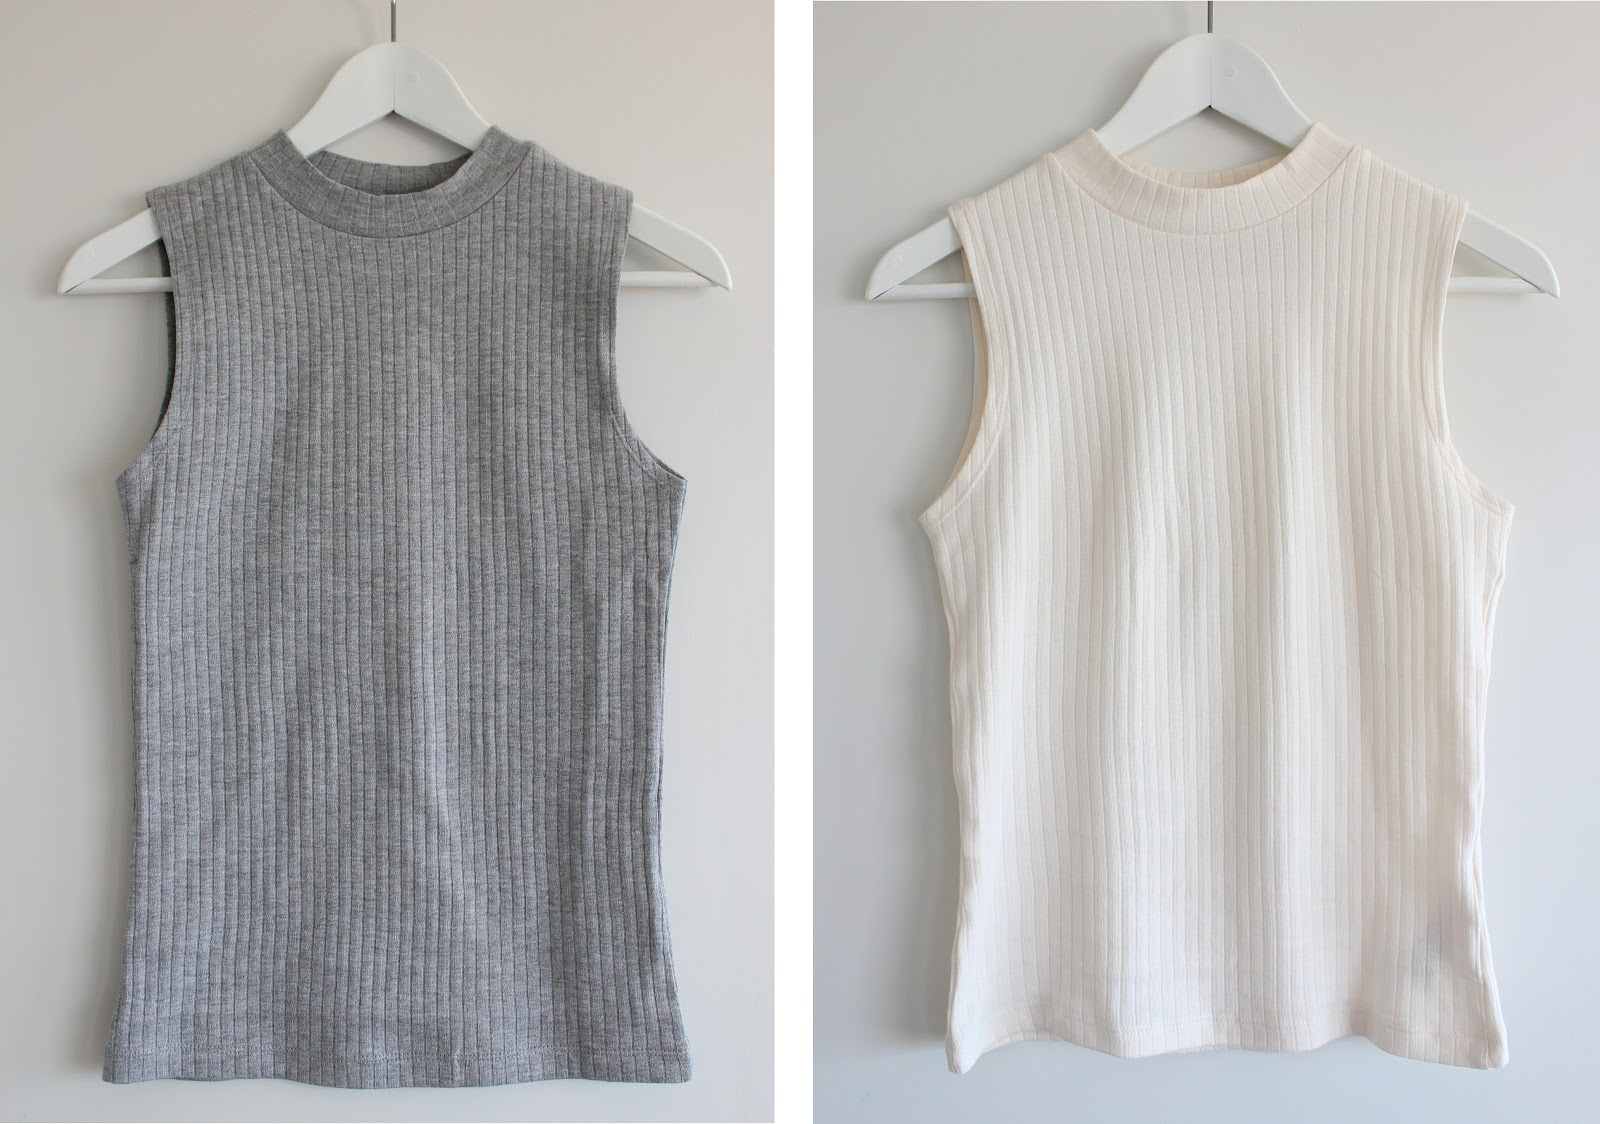 New Look, New Look tank tops, New Look tank tops cream grey, New Look high neck tops, New Look high neck tank tops, New Look high neck vests